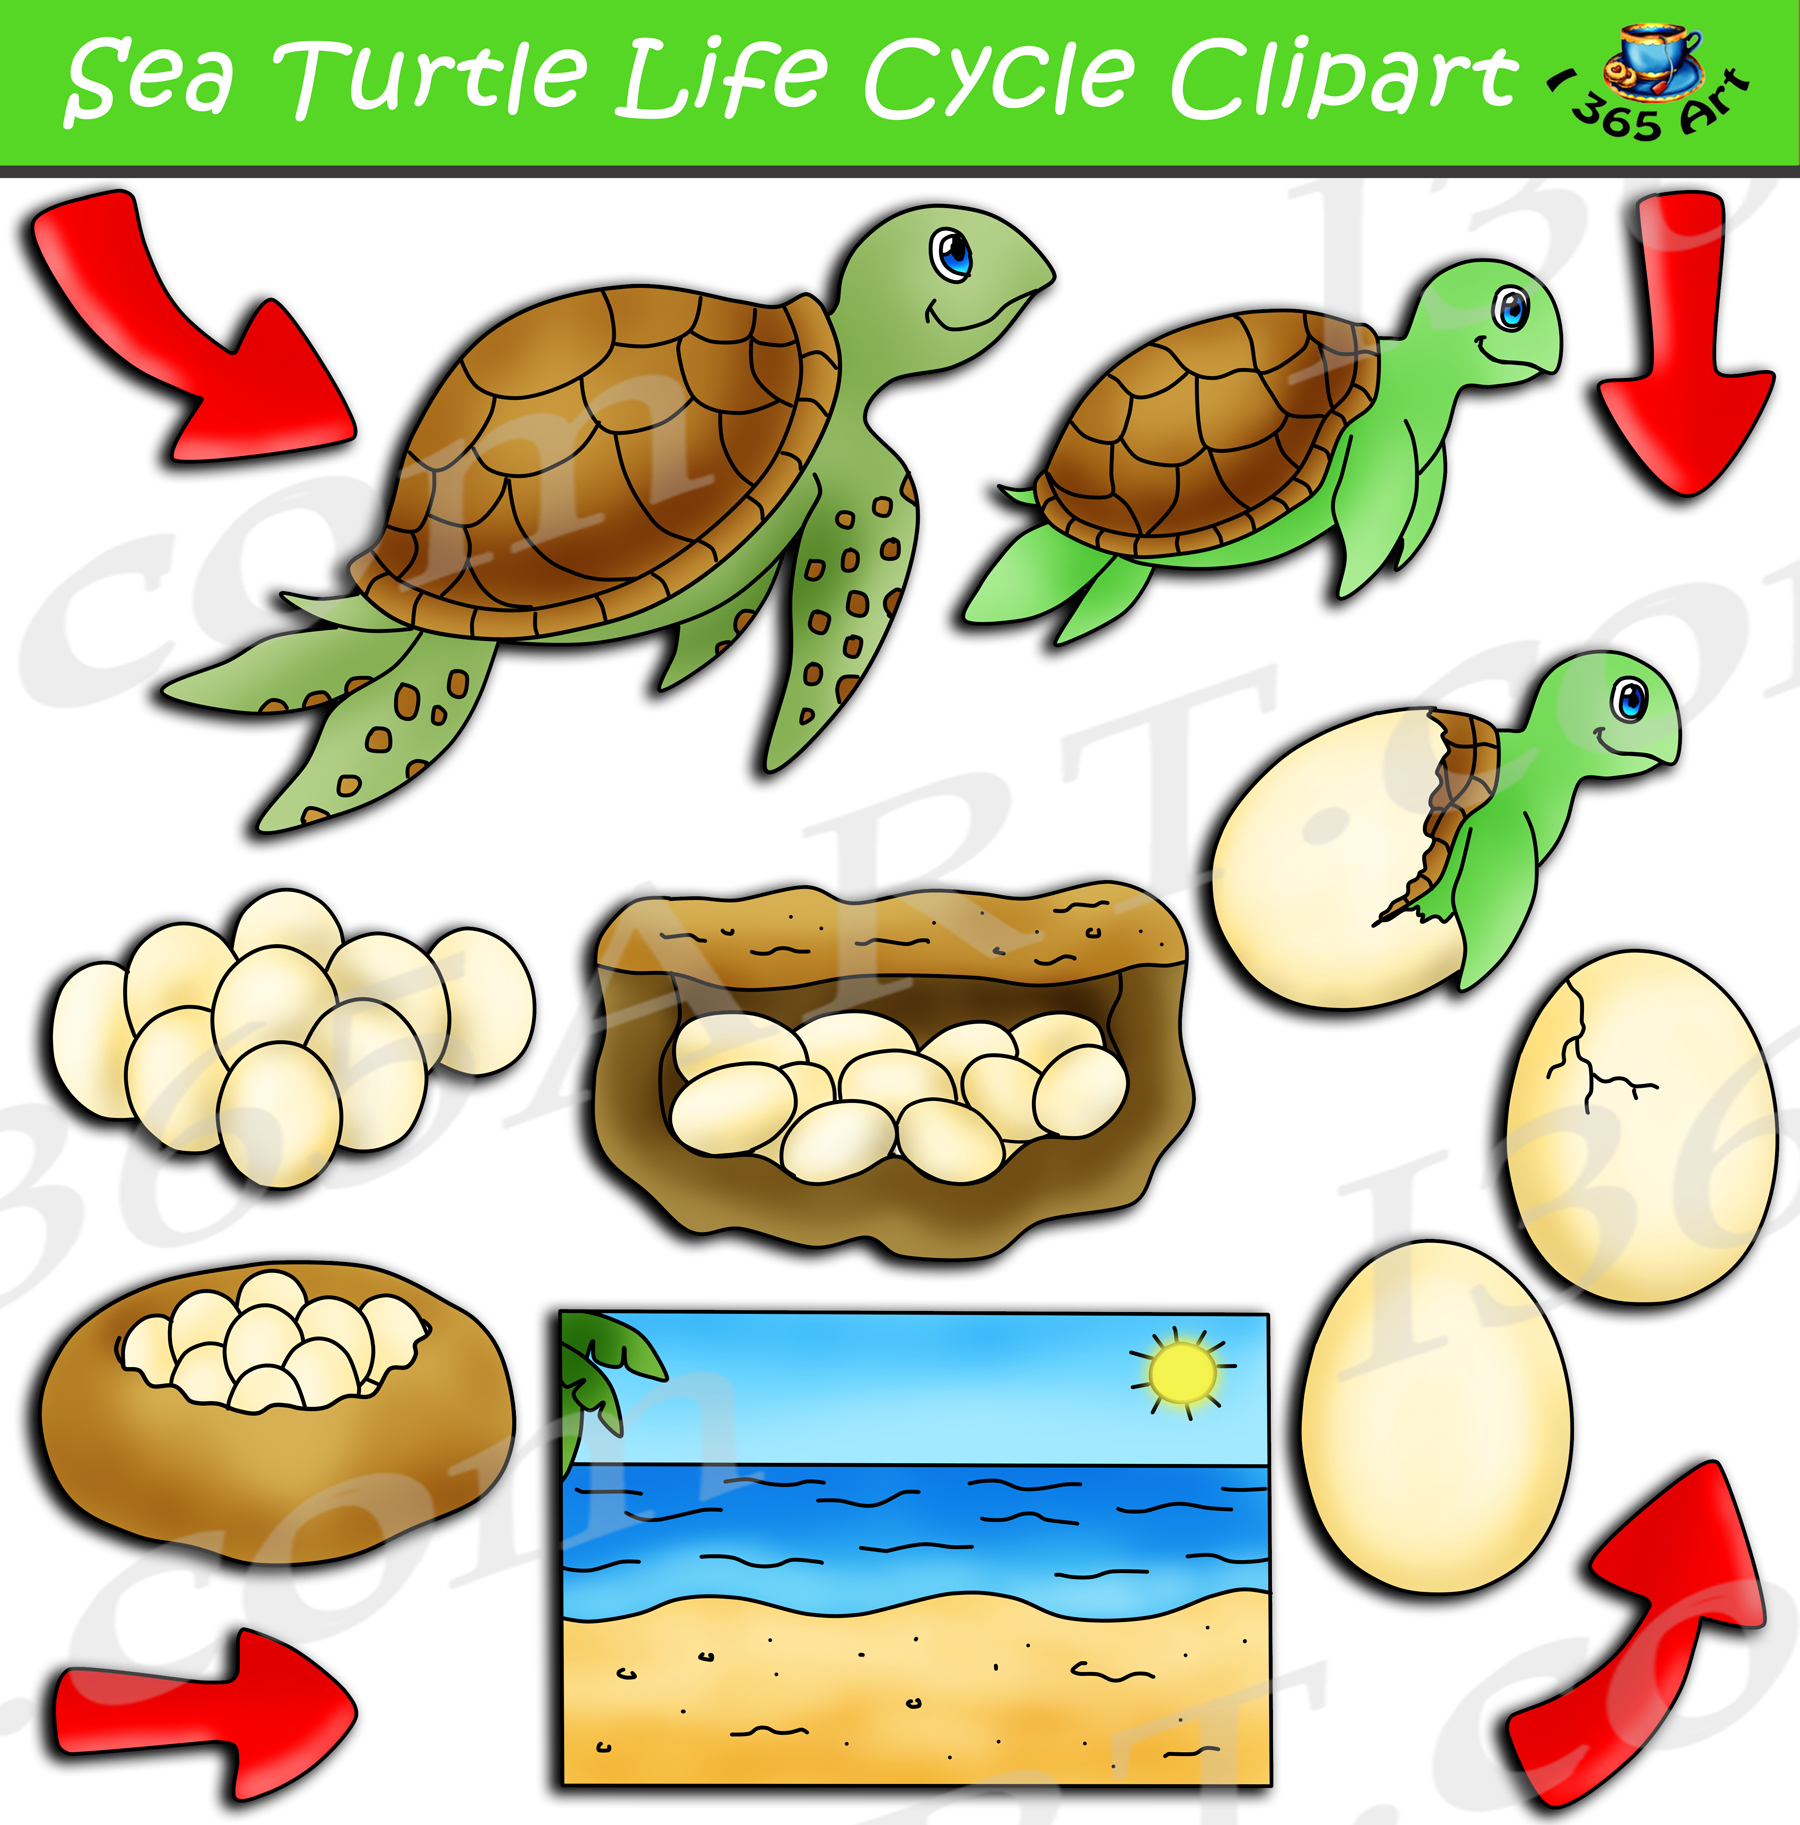 Life cycle of a ocean animals clipart clip art freeuse library Sea Turtle Life Cycle Clipart Pack clip art freeuse library